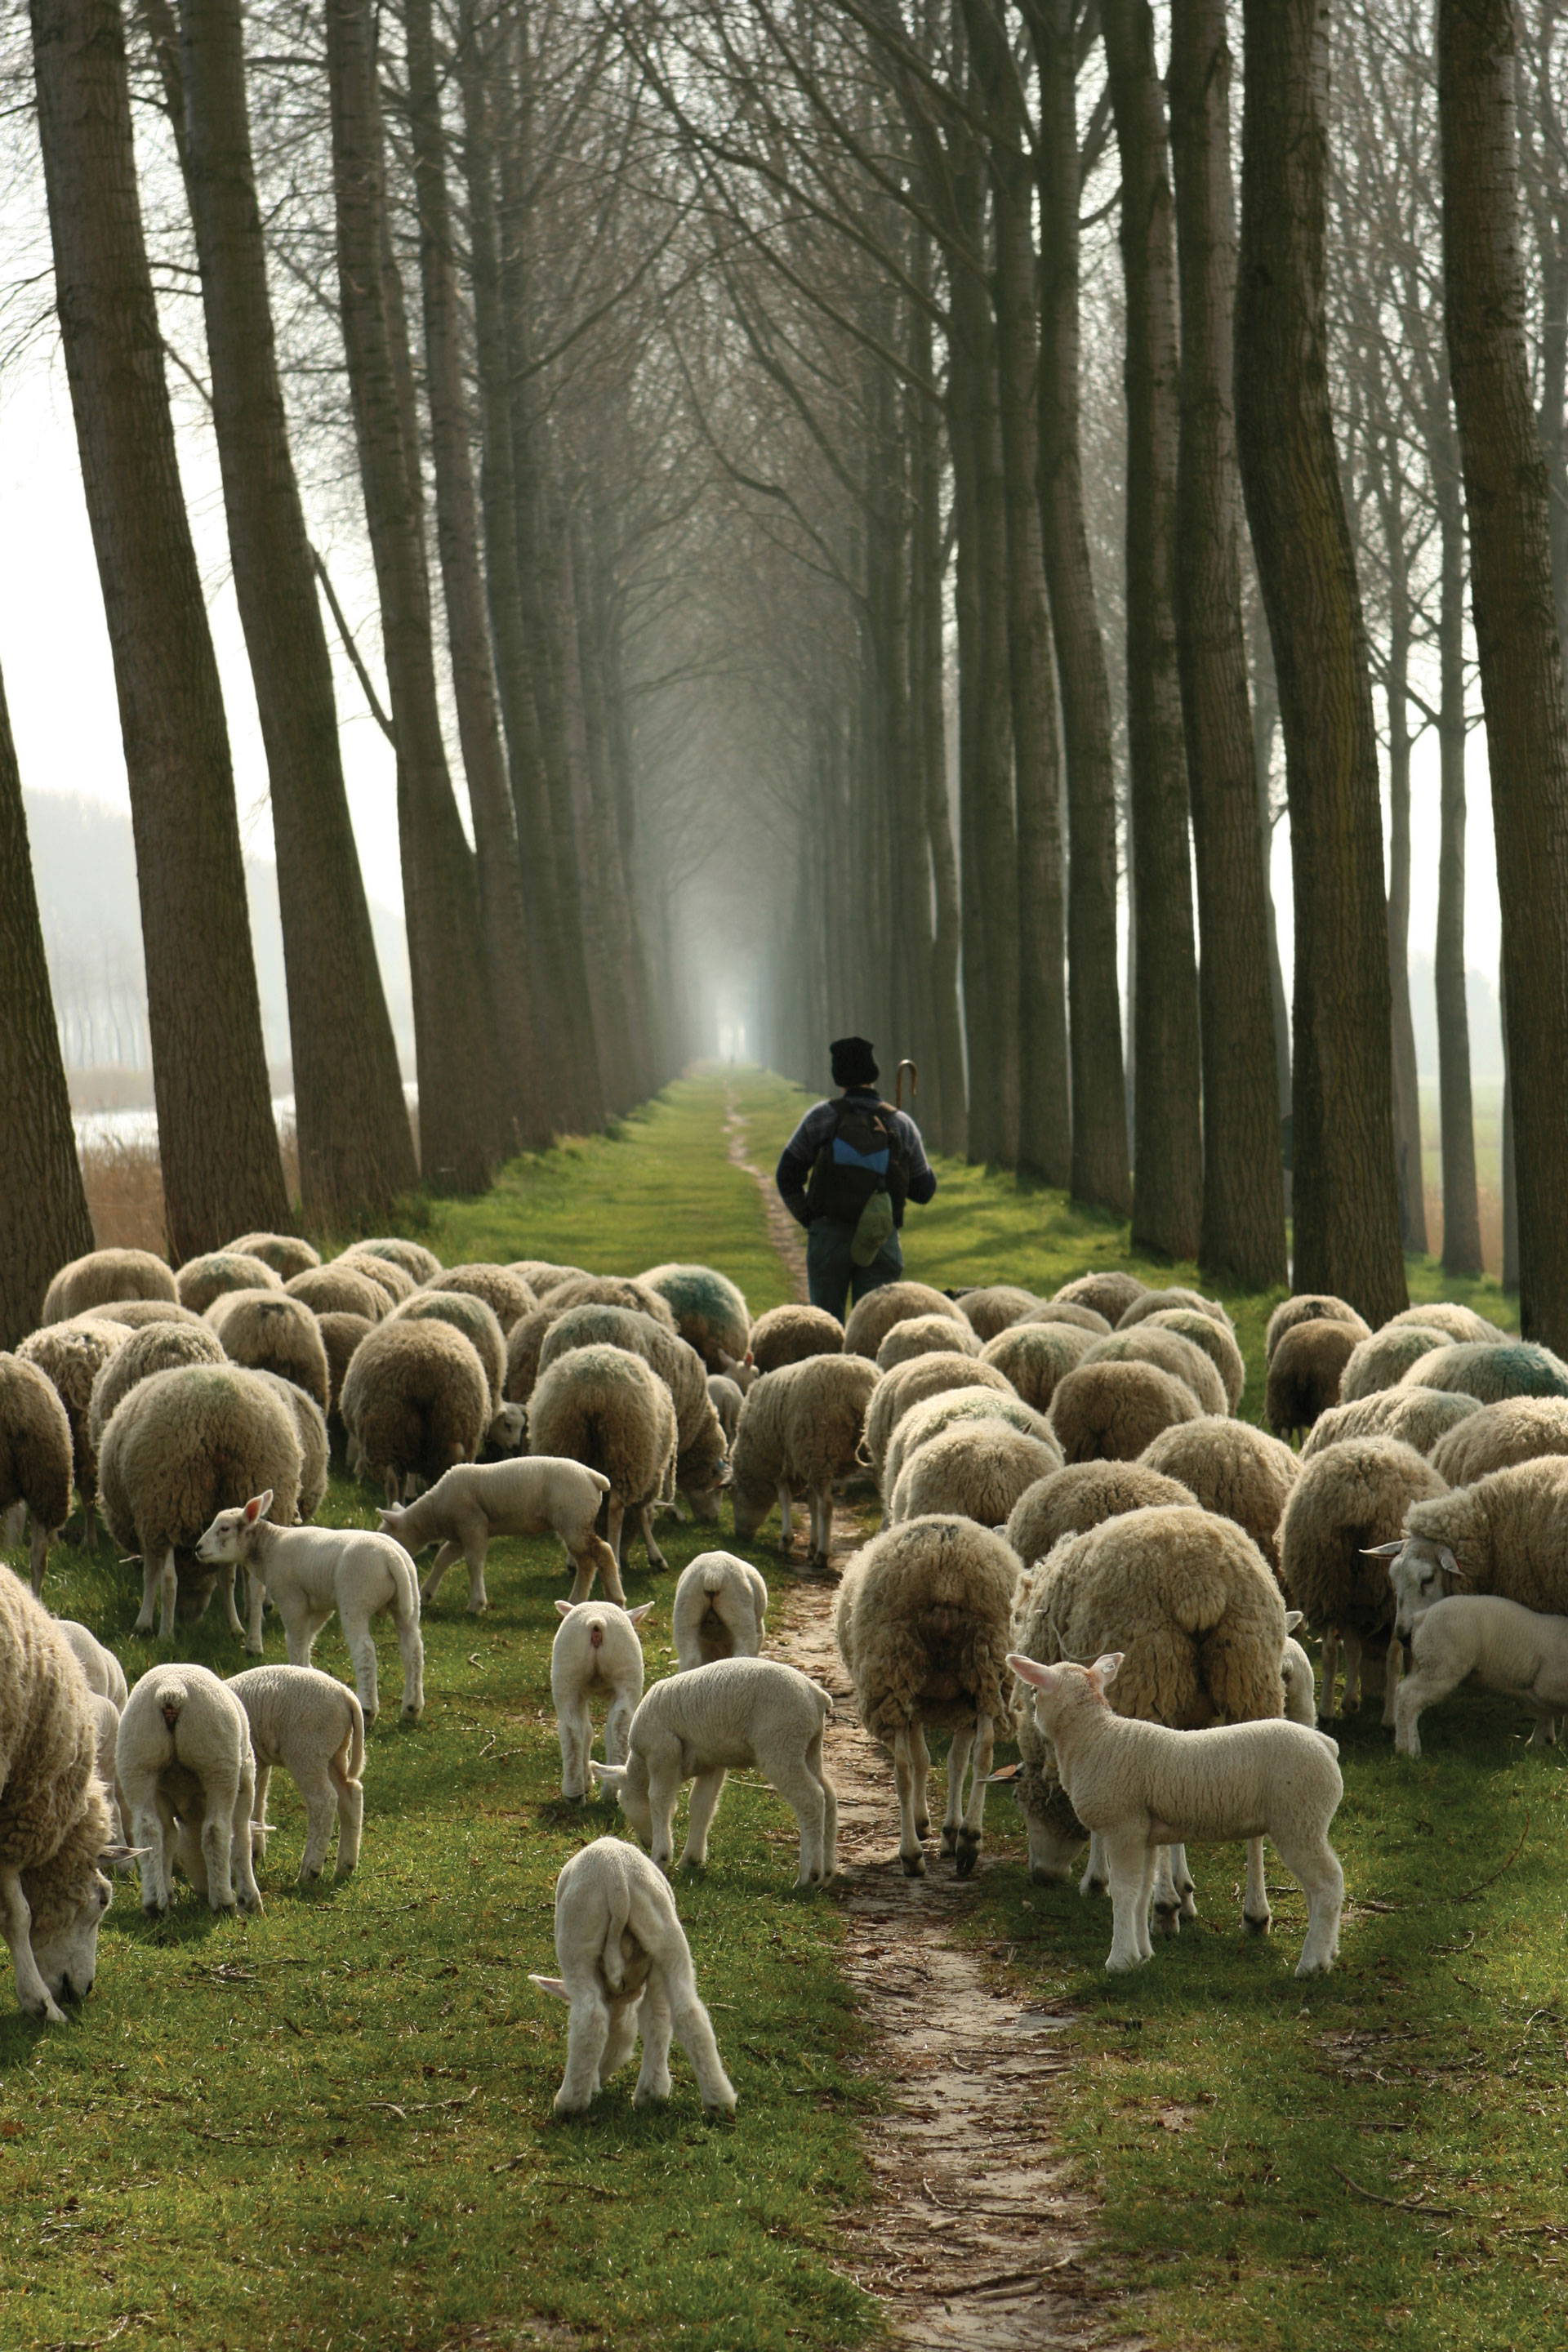 Shepherd and flock walking down a tree lined path, Springtime